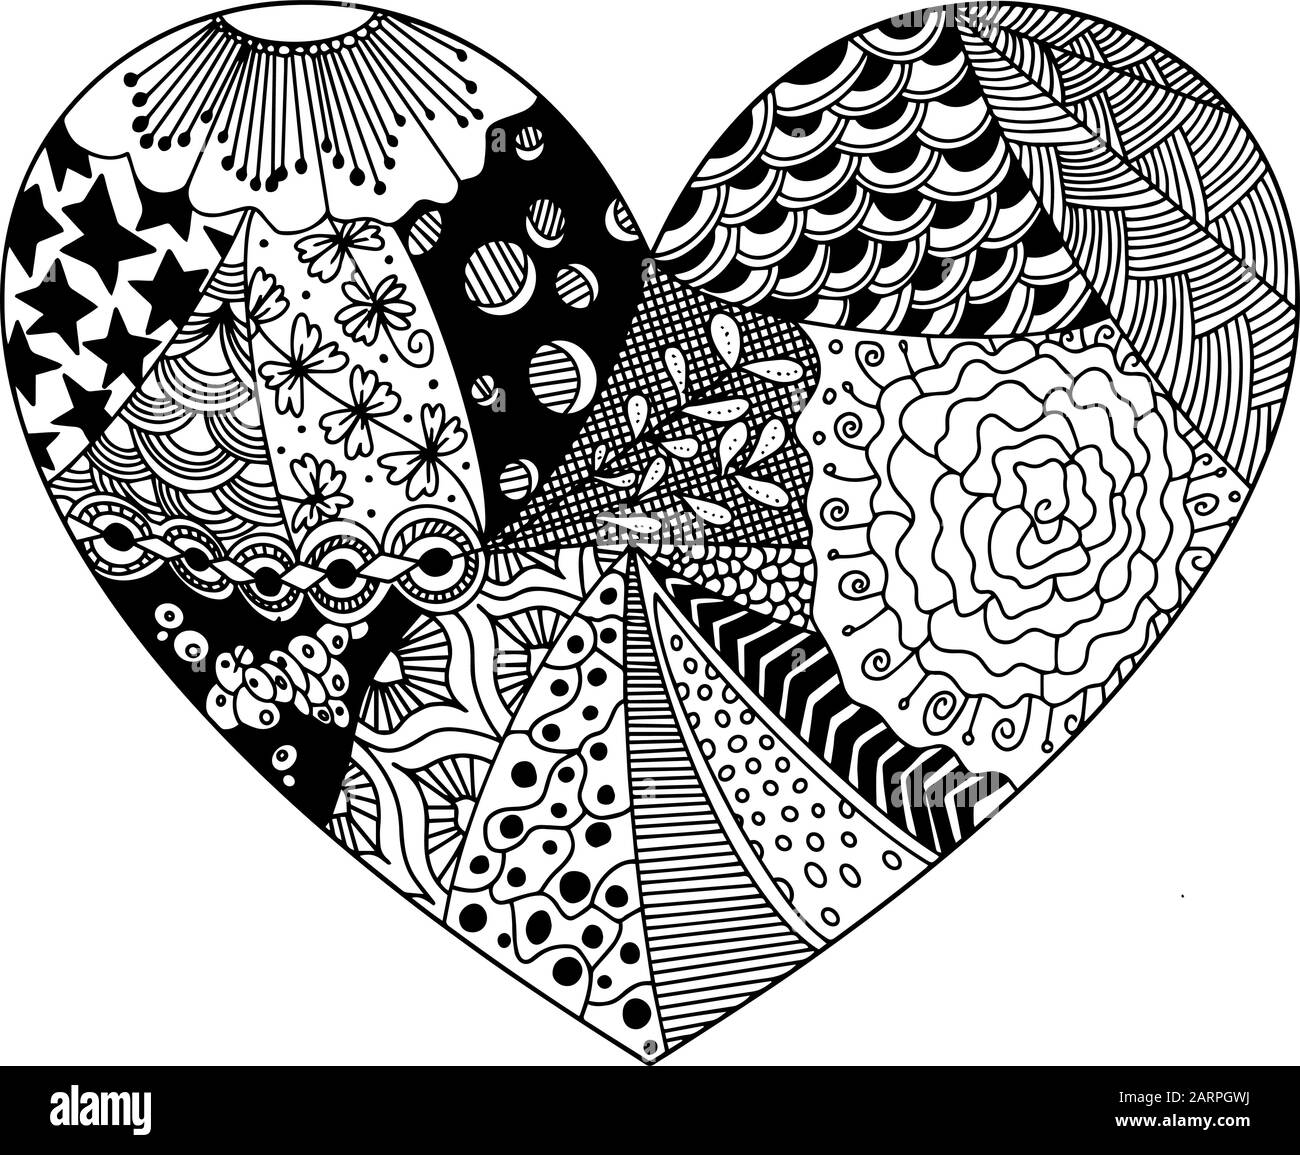 Vector Coloring From Zentangle Patterns In The Form Of